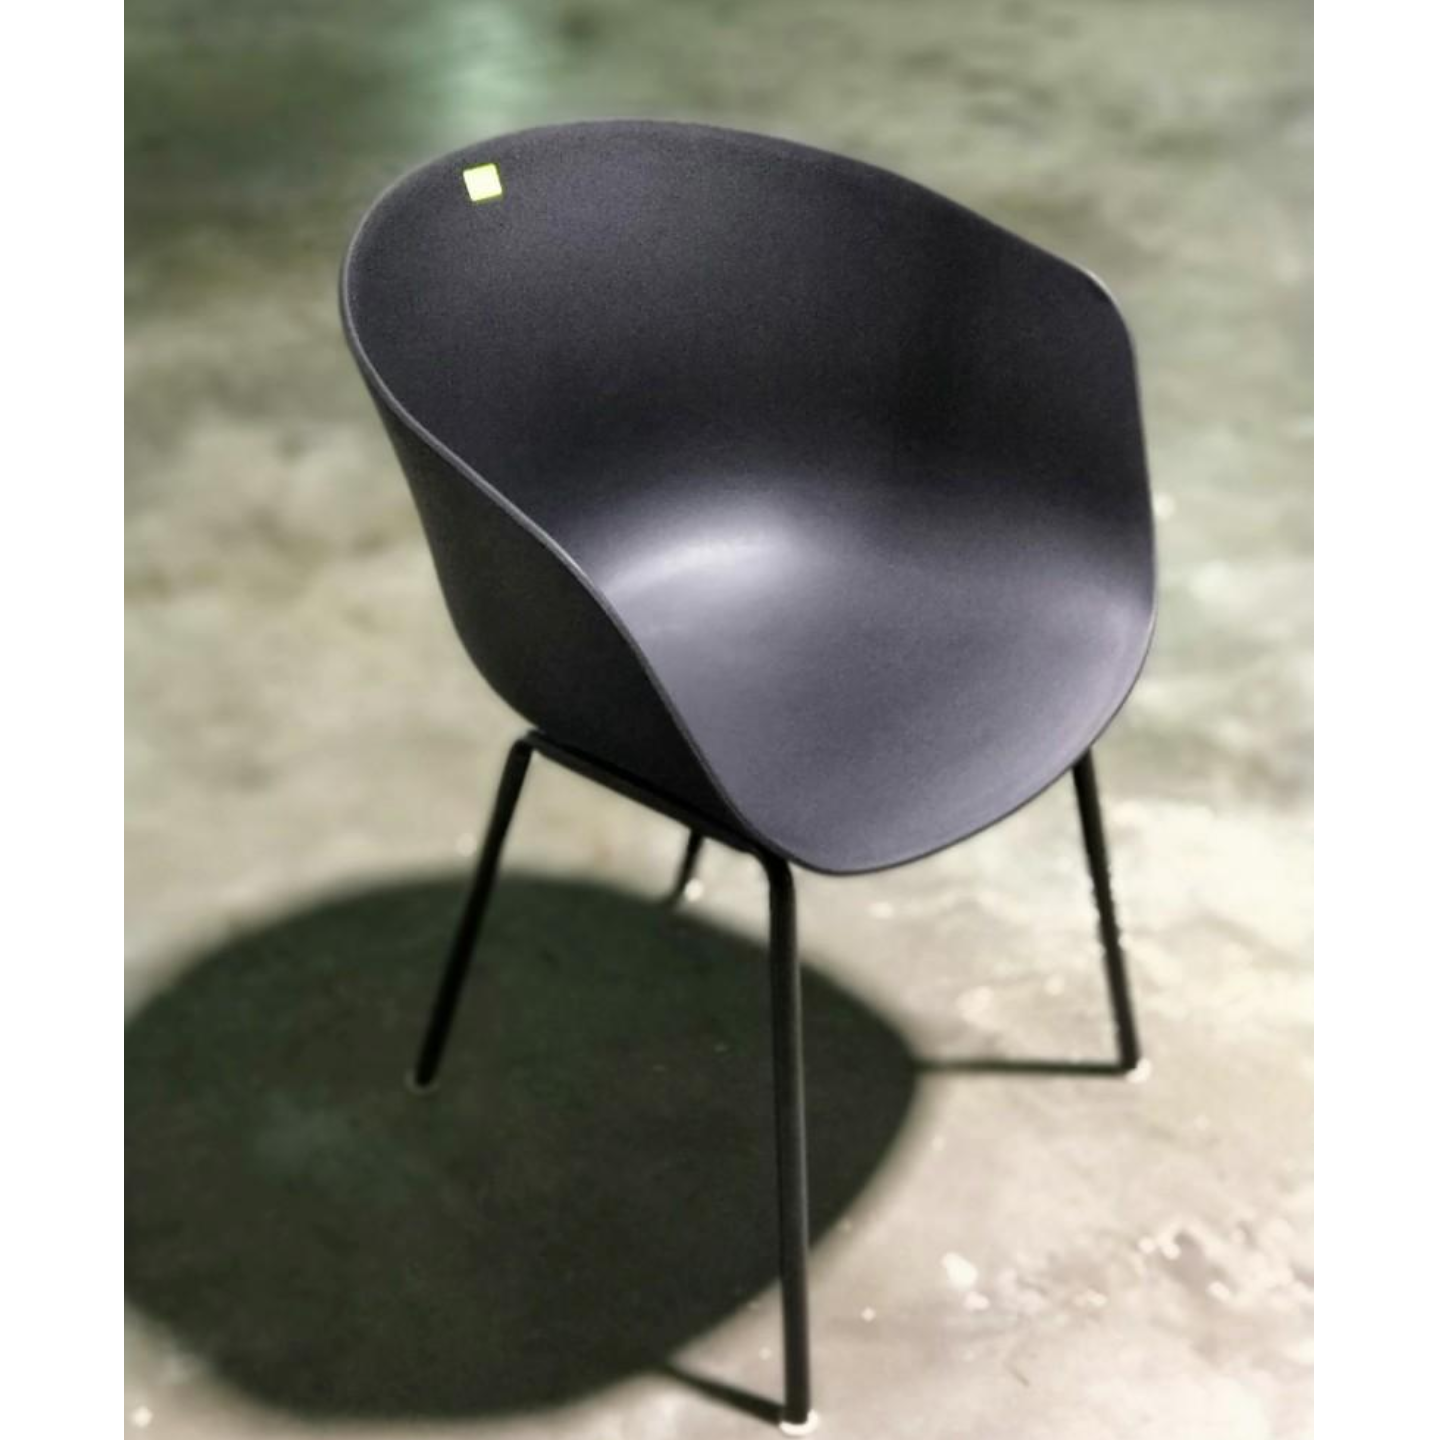 GYRO Chair in BLACK